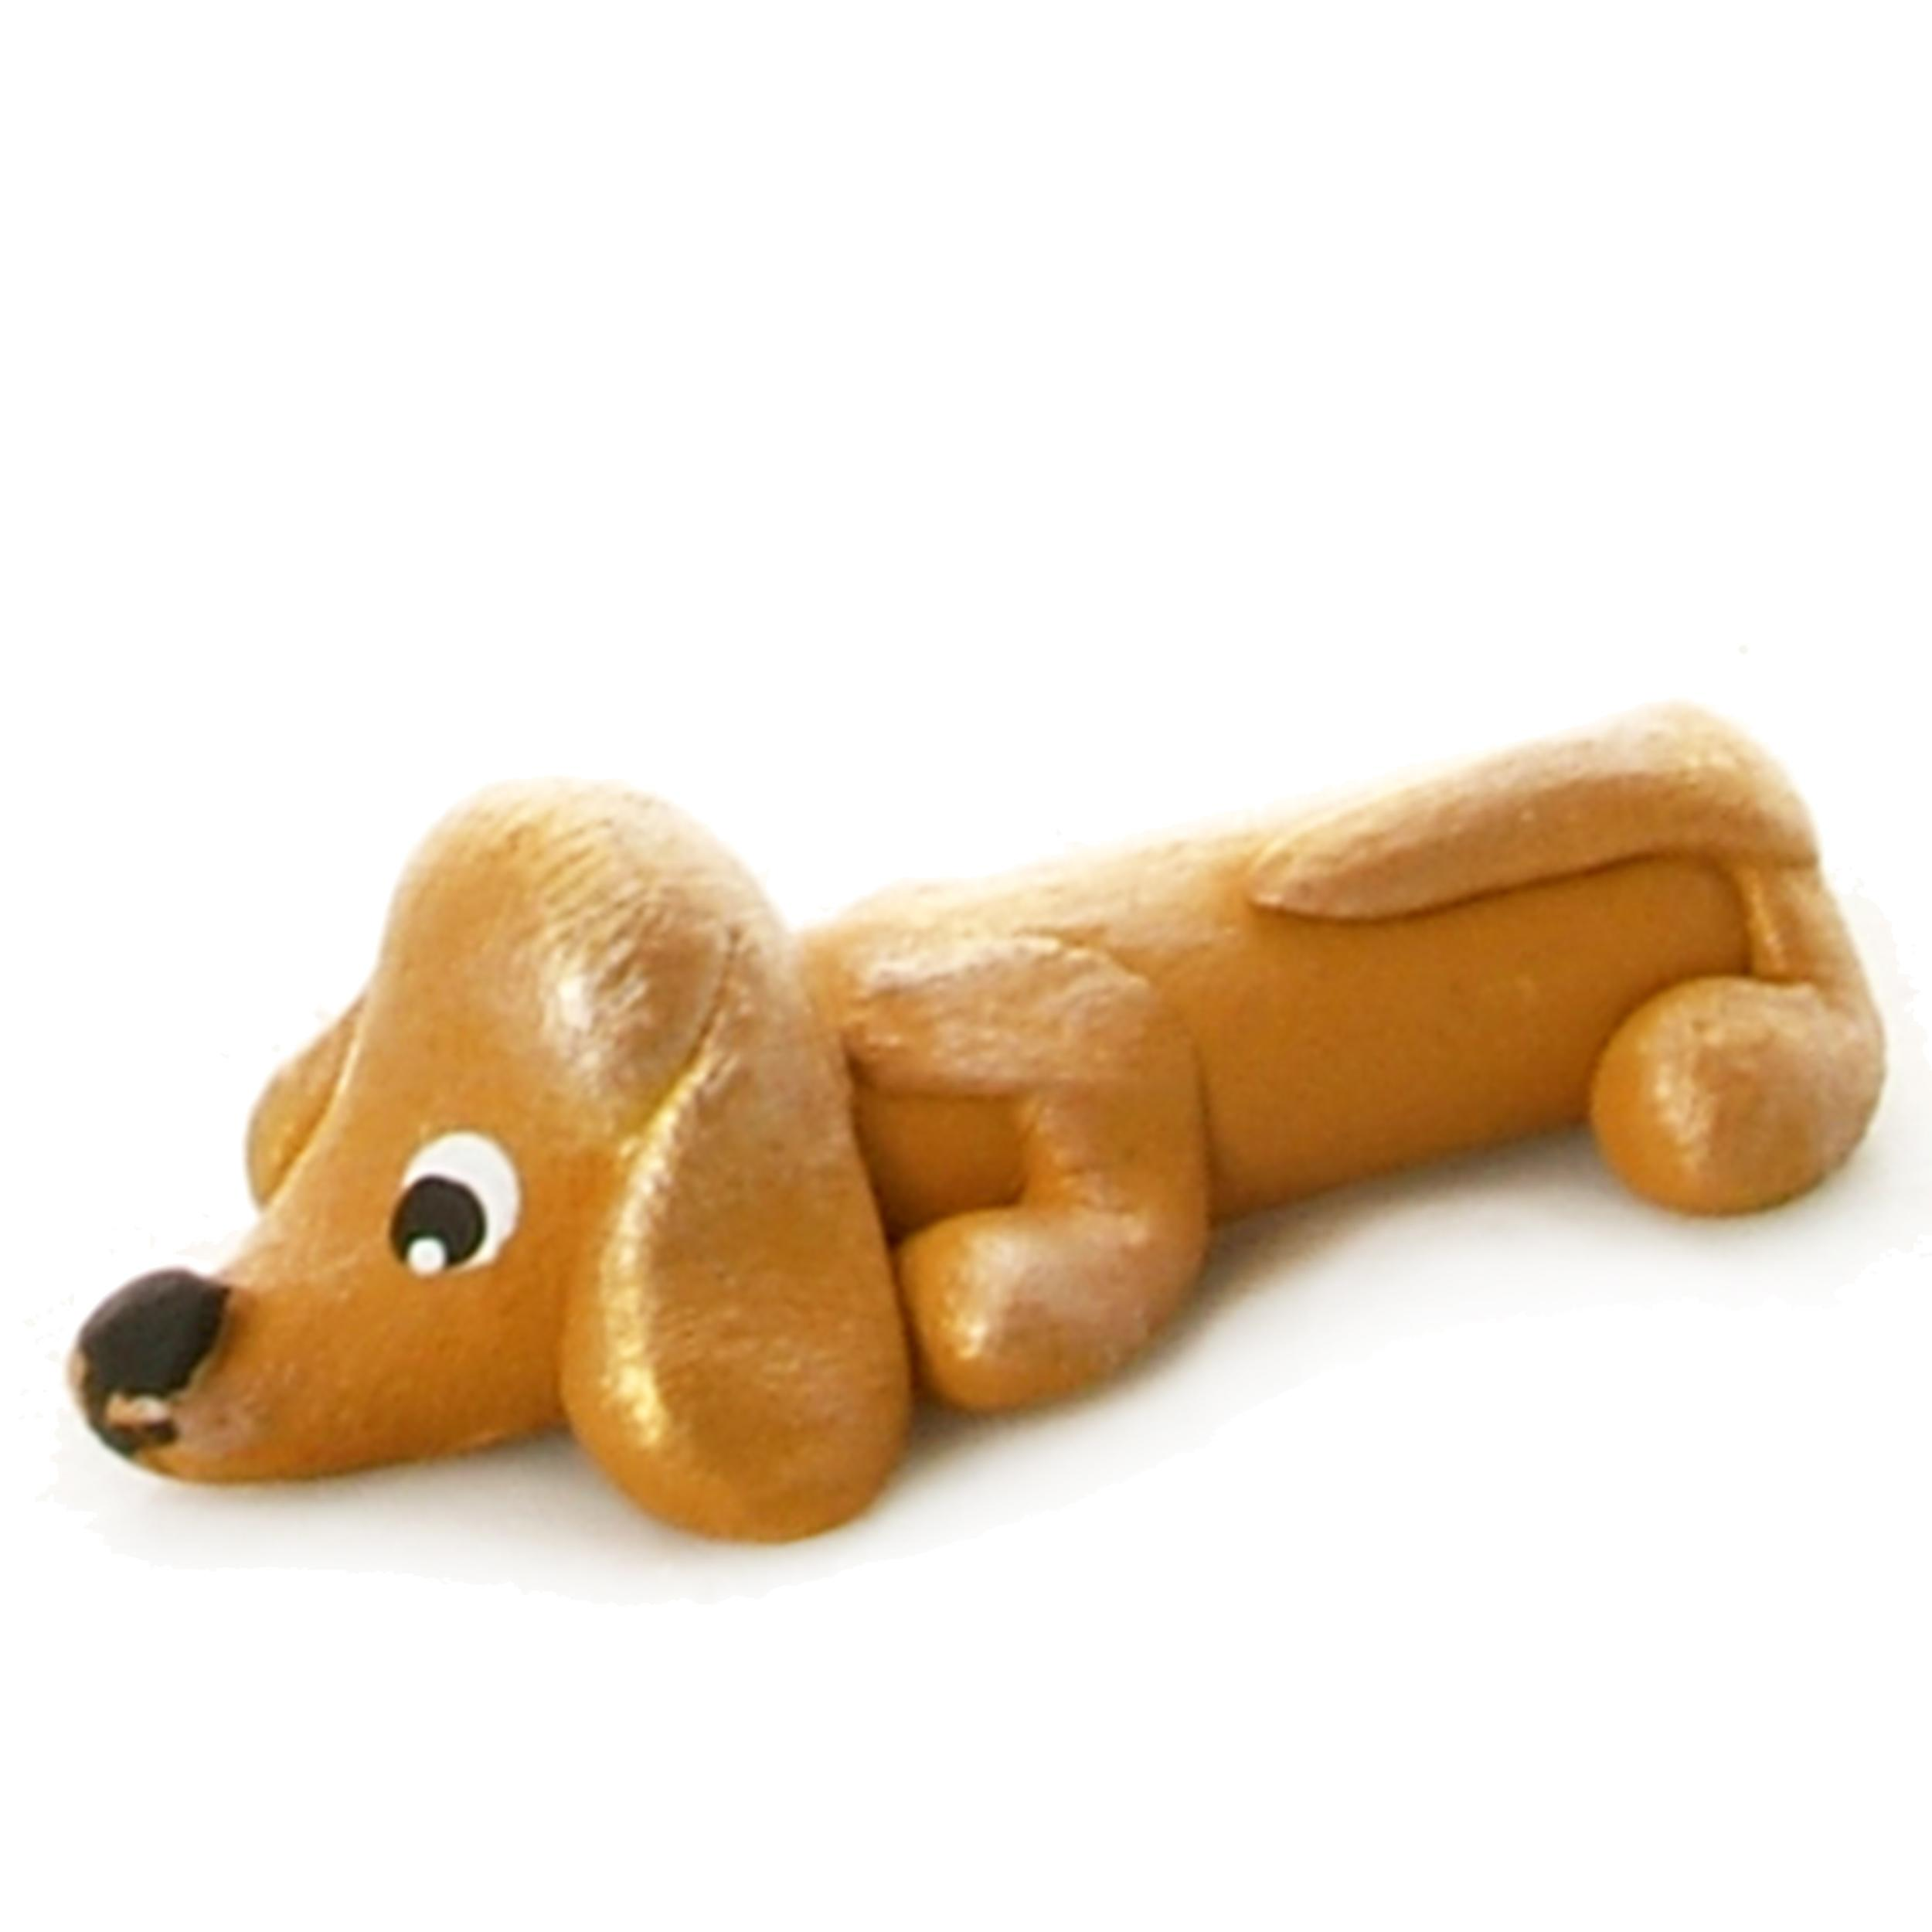 Pet in a Box | Ceramic Animal Gift for Kids | Mustard Dachshund